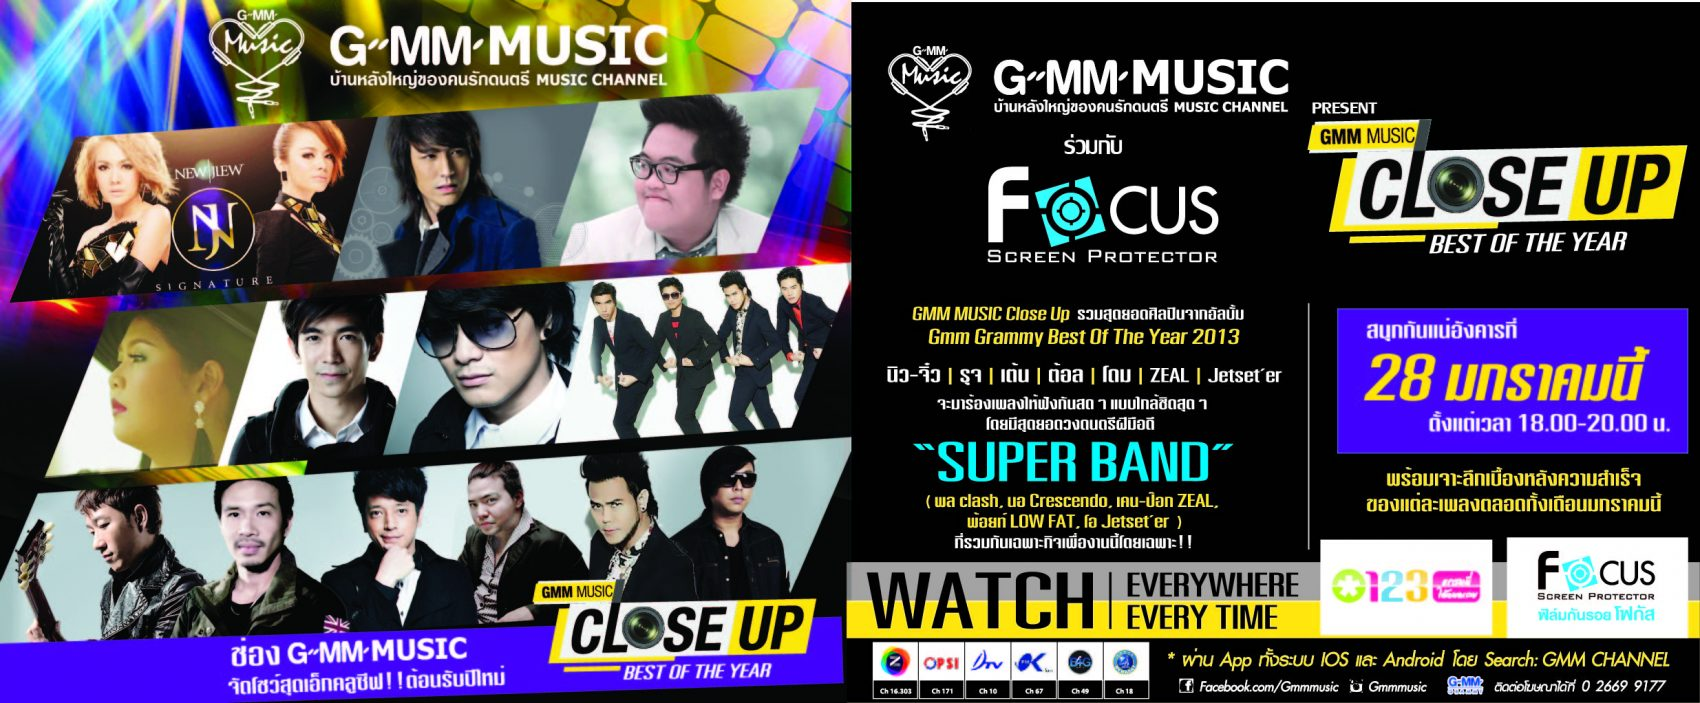 Focus  แจกเป็นคู่ให้ควงกันมาดู GMM MUSIC CLOSE UP SHOW BEST OF THE YEAR AND SUPER BAND ก่อนใคร